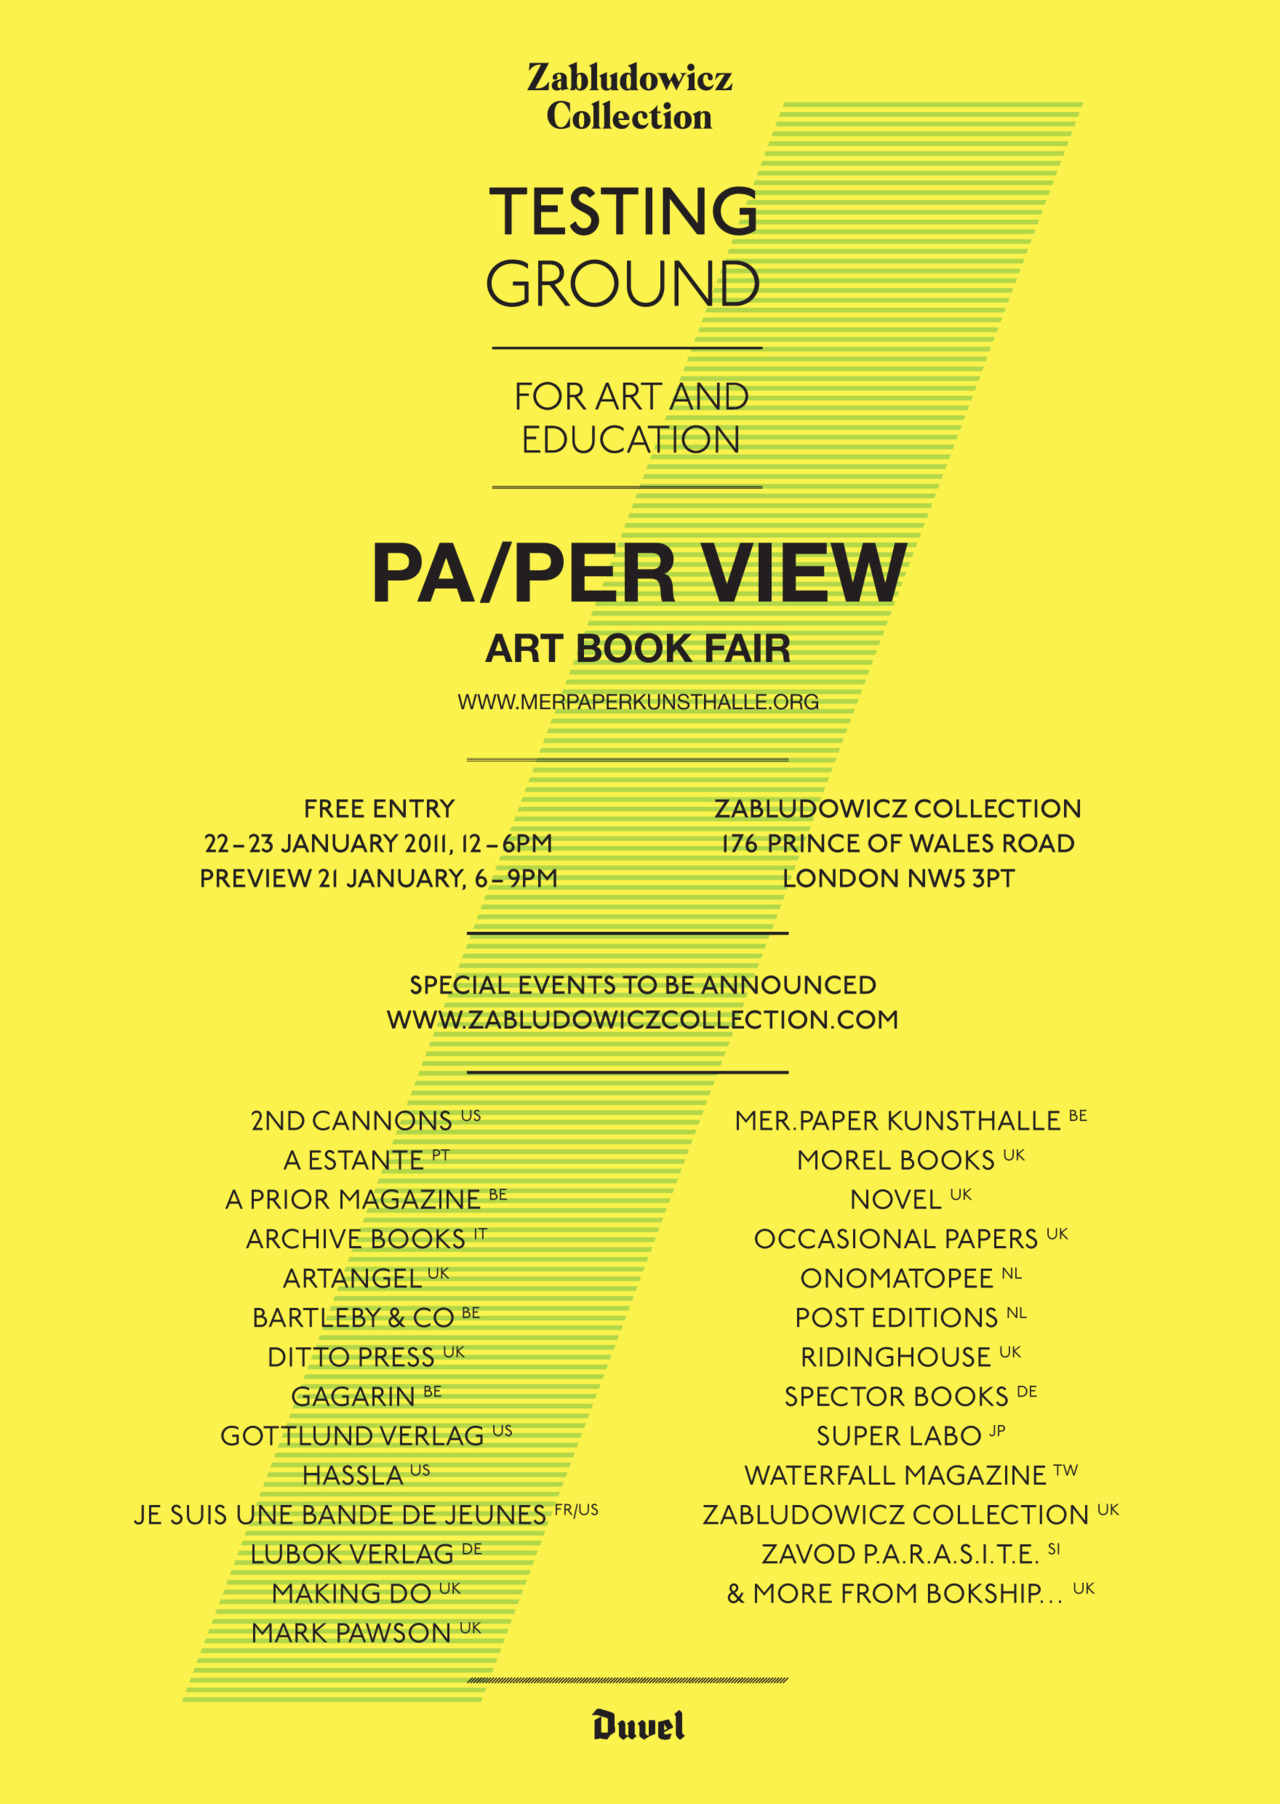 Art Book Fair 22-23 January 2011, 12-6pm Preview 21 January, 6-9pm http://www.paperviewartbookfair.org/archives.html 2nd Cannons (US) A Estante (PT) A Prior Magazine (BE) Archive Books (IT) Artangel (UK) Bartleby & Co (BE) Ditto Press (UK) Eastside Projects (UK) Gagarin (BE) Gottlund Verlag (US) Hassla (US) Je Suis Une Bande De Jeunes (FR/US) Lubok Verlag (DE) Making Do (UK) Mark Pawson (UK) MER.Paper Kunsthalle (BE) MONO (UK) Morel Books (UK) Novel (UK) Occasional Papers (UK) Onomatopee (NL) Post Editions (NL) Ridinghouse (UK) Spector Books (DE) Super Labo (JP) Waterfall Magazine (TW) Zabludowicz Collection (UK) Zavod P.A.R.A.S.I.T.E. (SI) & more from Bokship….(UK)